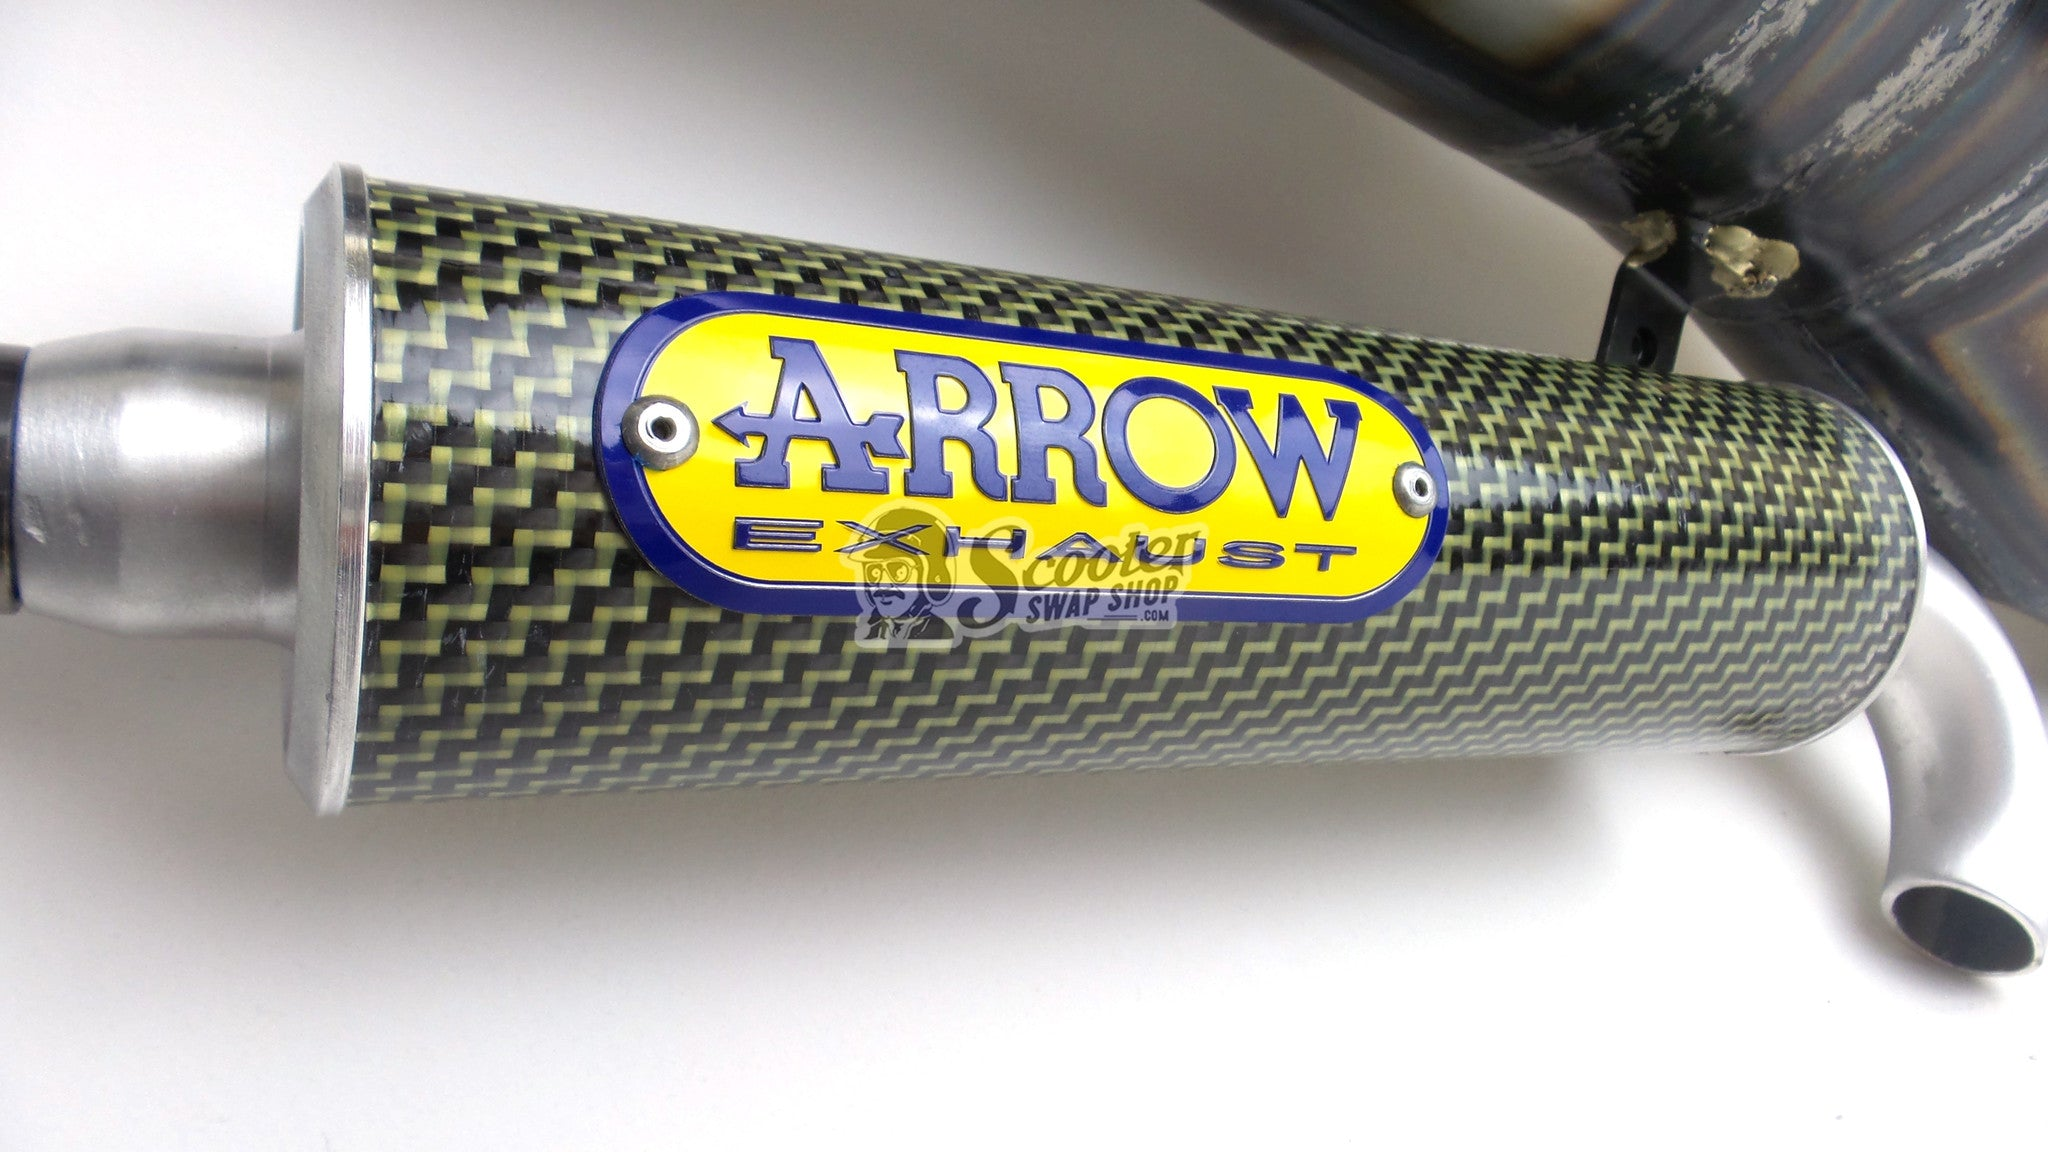 Arrow Exhaust For Honda Elite '94+ and Dio - ScooterSwapShop